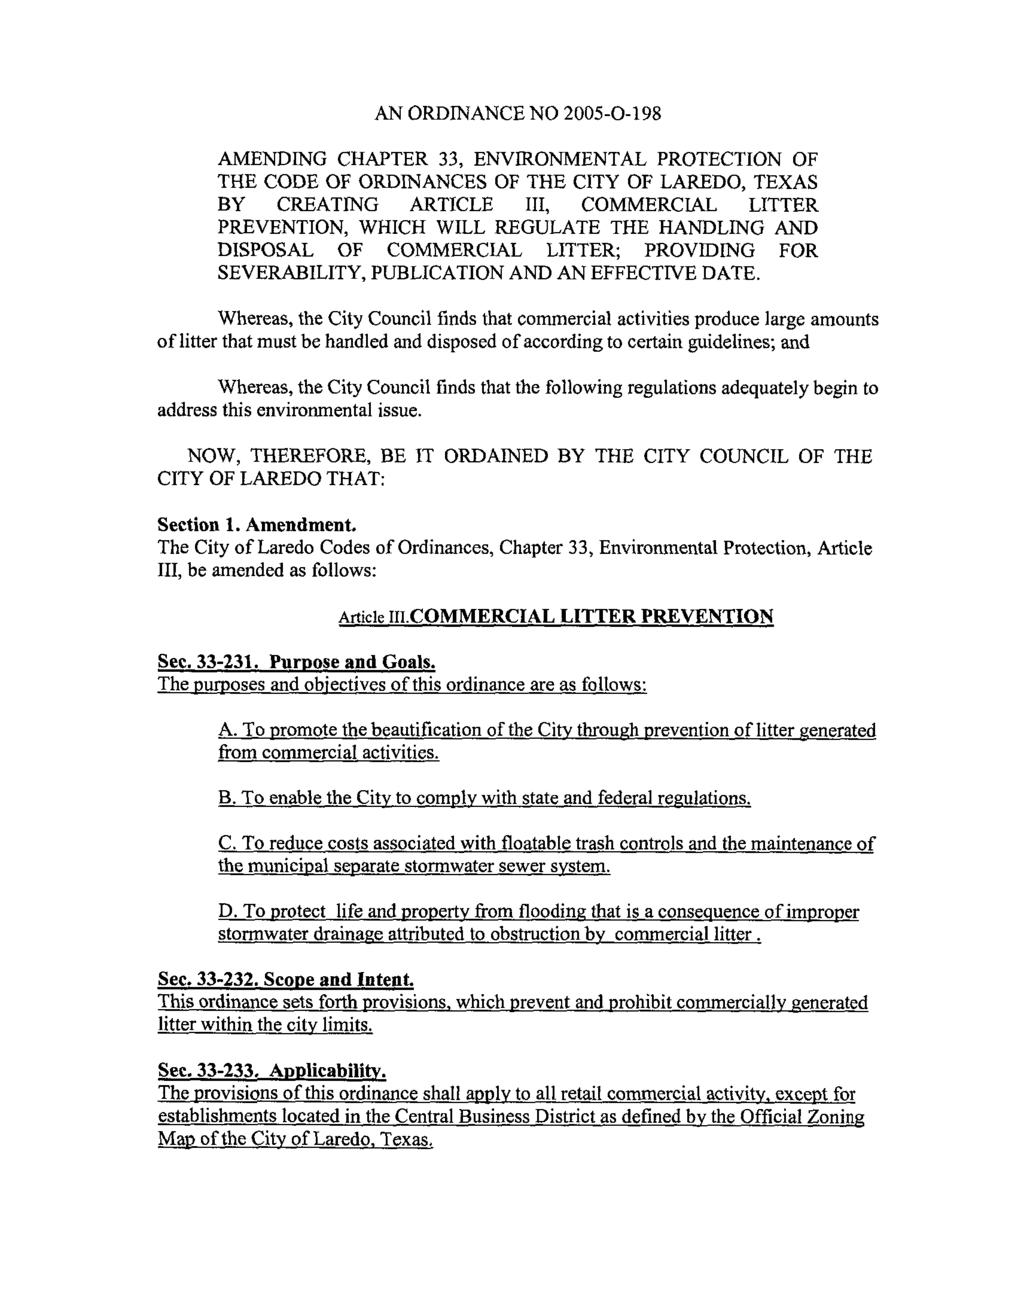 AN ORDINANCE NO 2005-0-198 AMENDING CHAPTER 33, ENVIRONMENTAL PROTECTION OF THE CODE OF ORDINANCES OF THE CITY OF LAREDO, TEXAS BY CREATING ARTICLE 111, COMMERCIAL LITTER PREVENTION, WHICH WILL